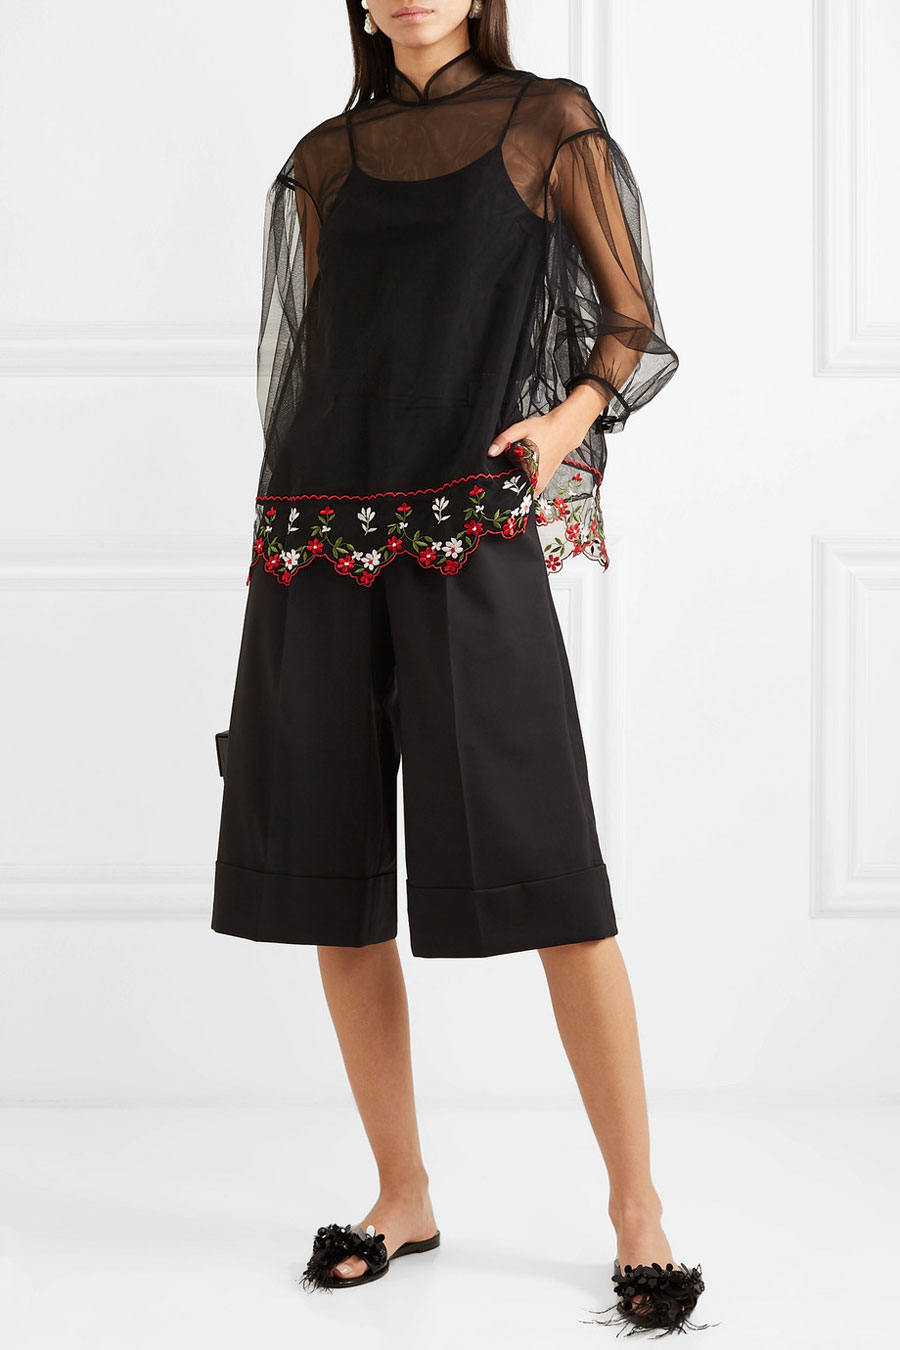 SIMONE ROCHA Belted Feather-trimmed Wool-blend Shorts